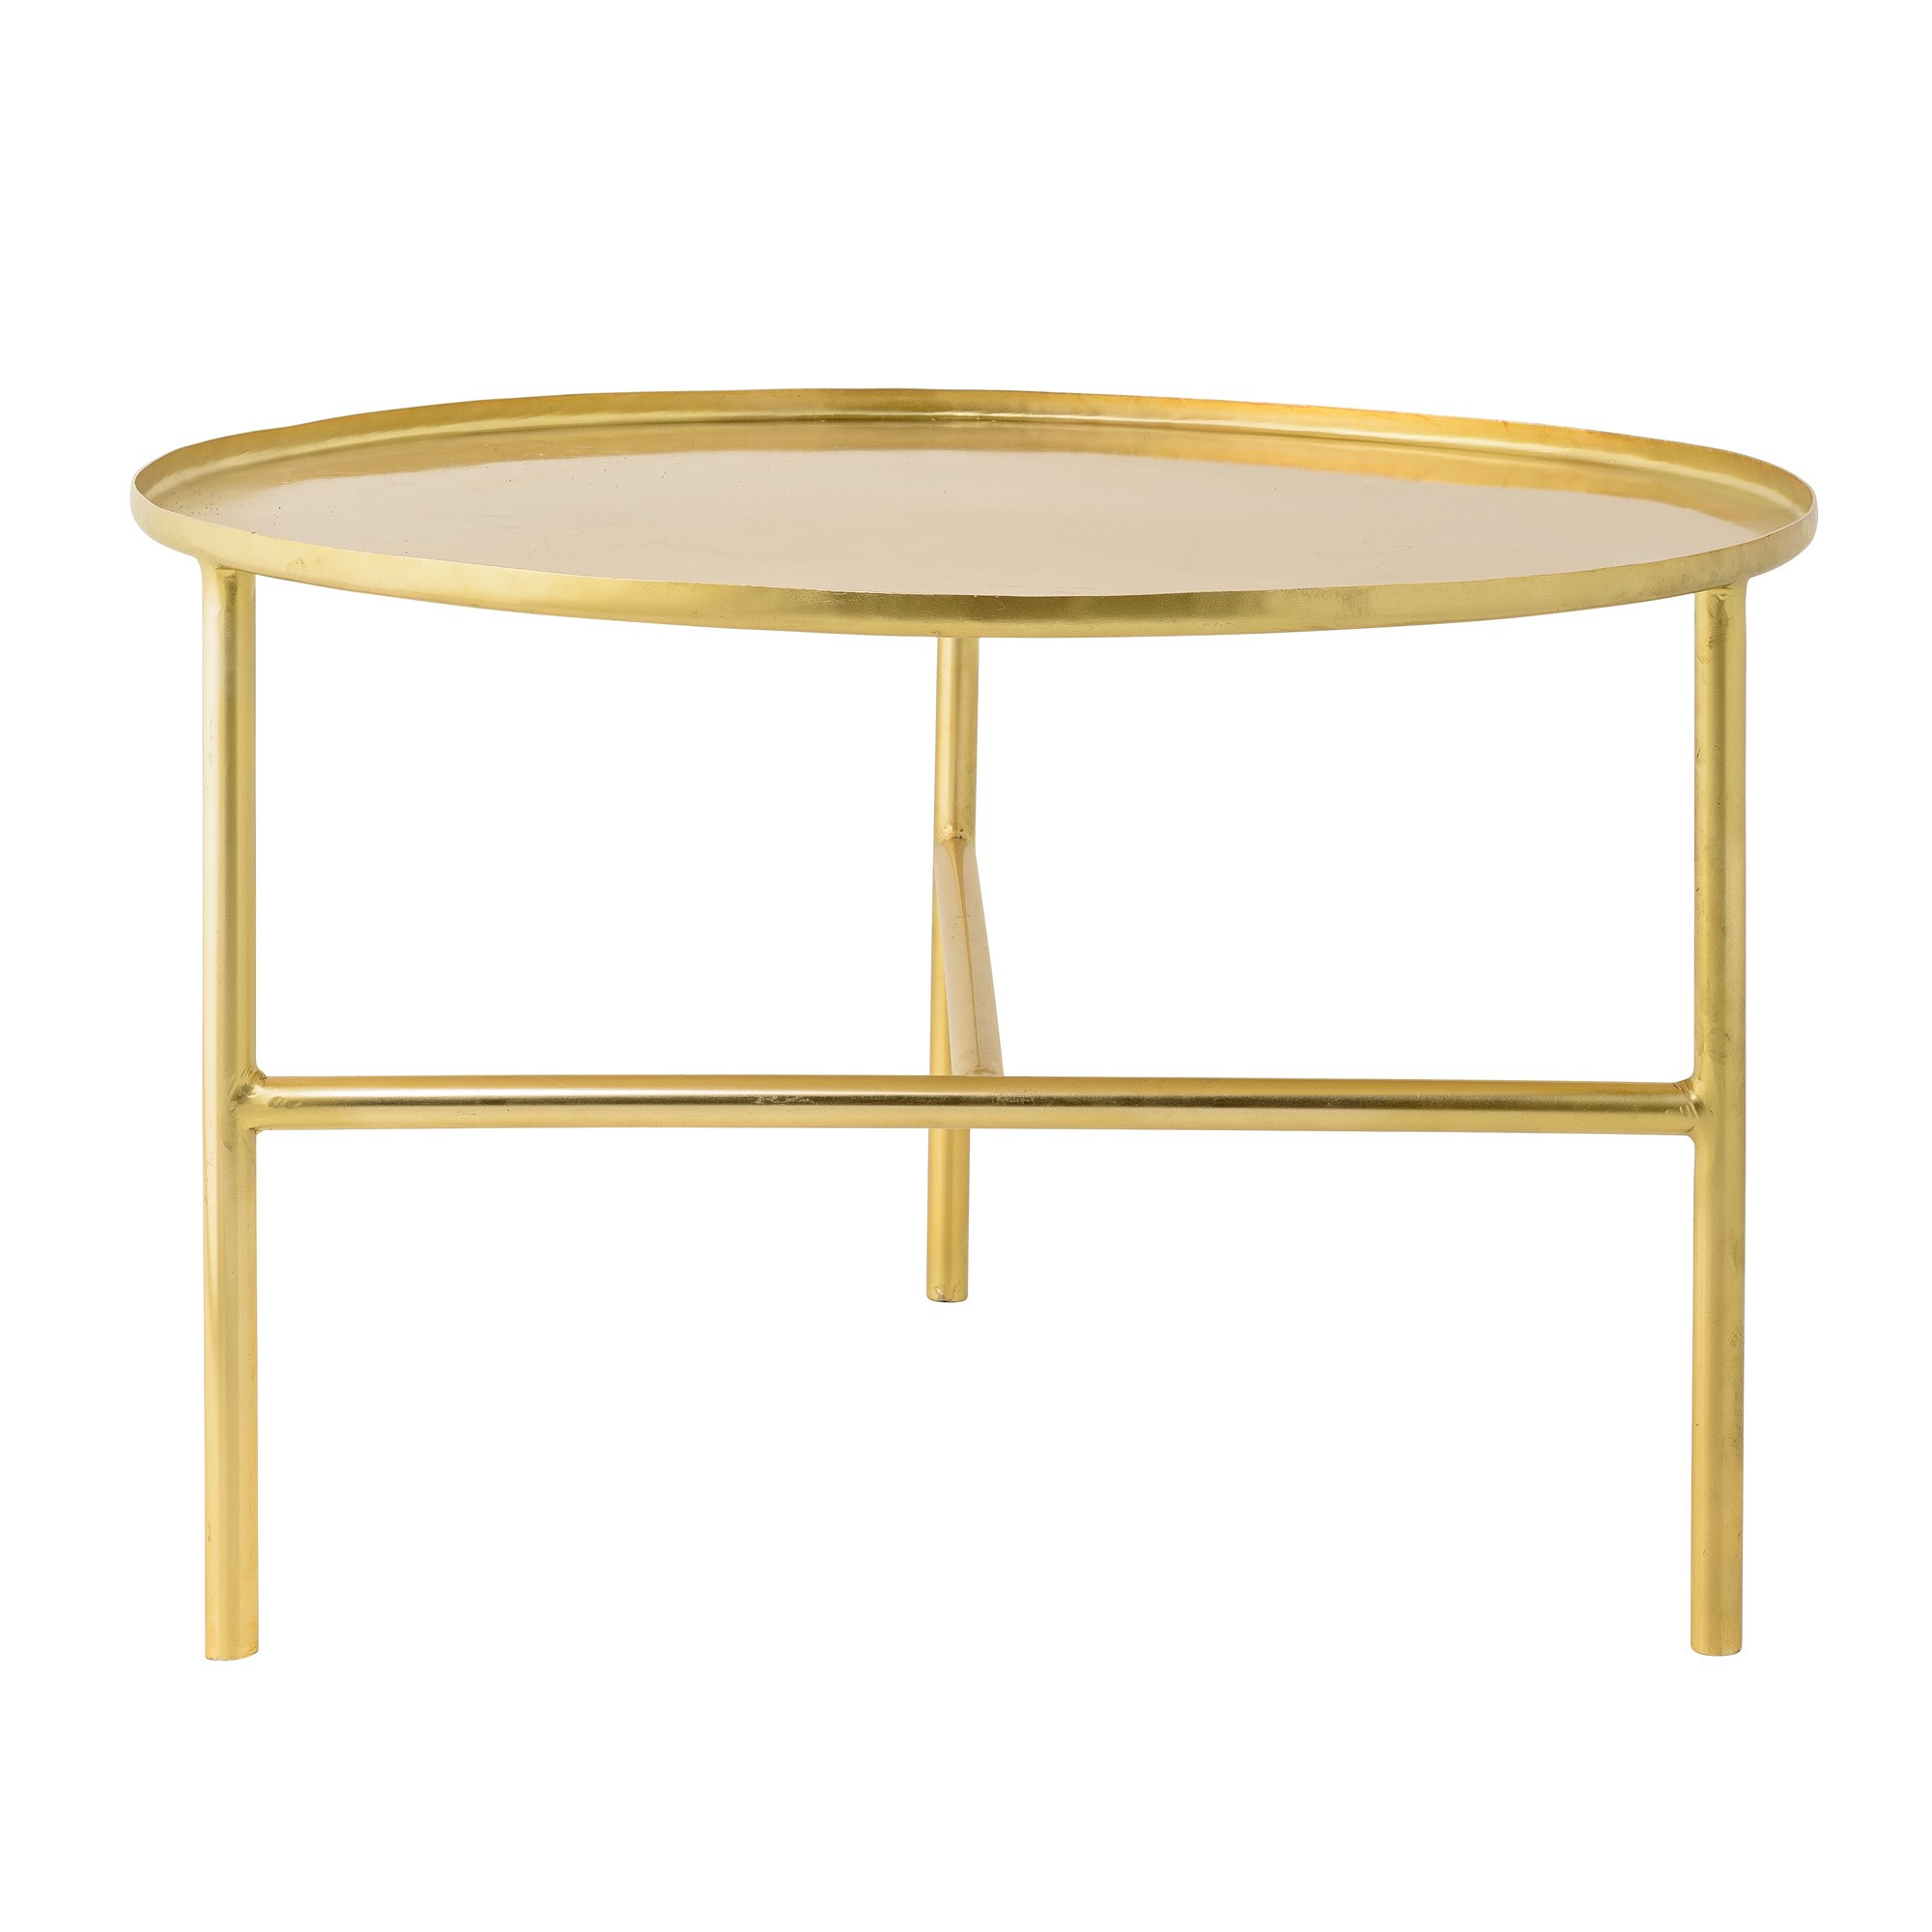 781ac7119adeeba71ce22d8f034a38b6 Meilleur De De Table Basse Italienne Design